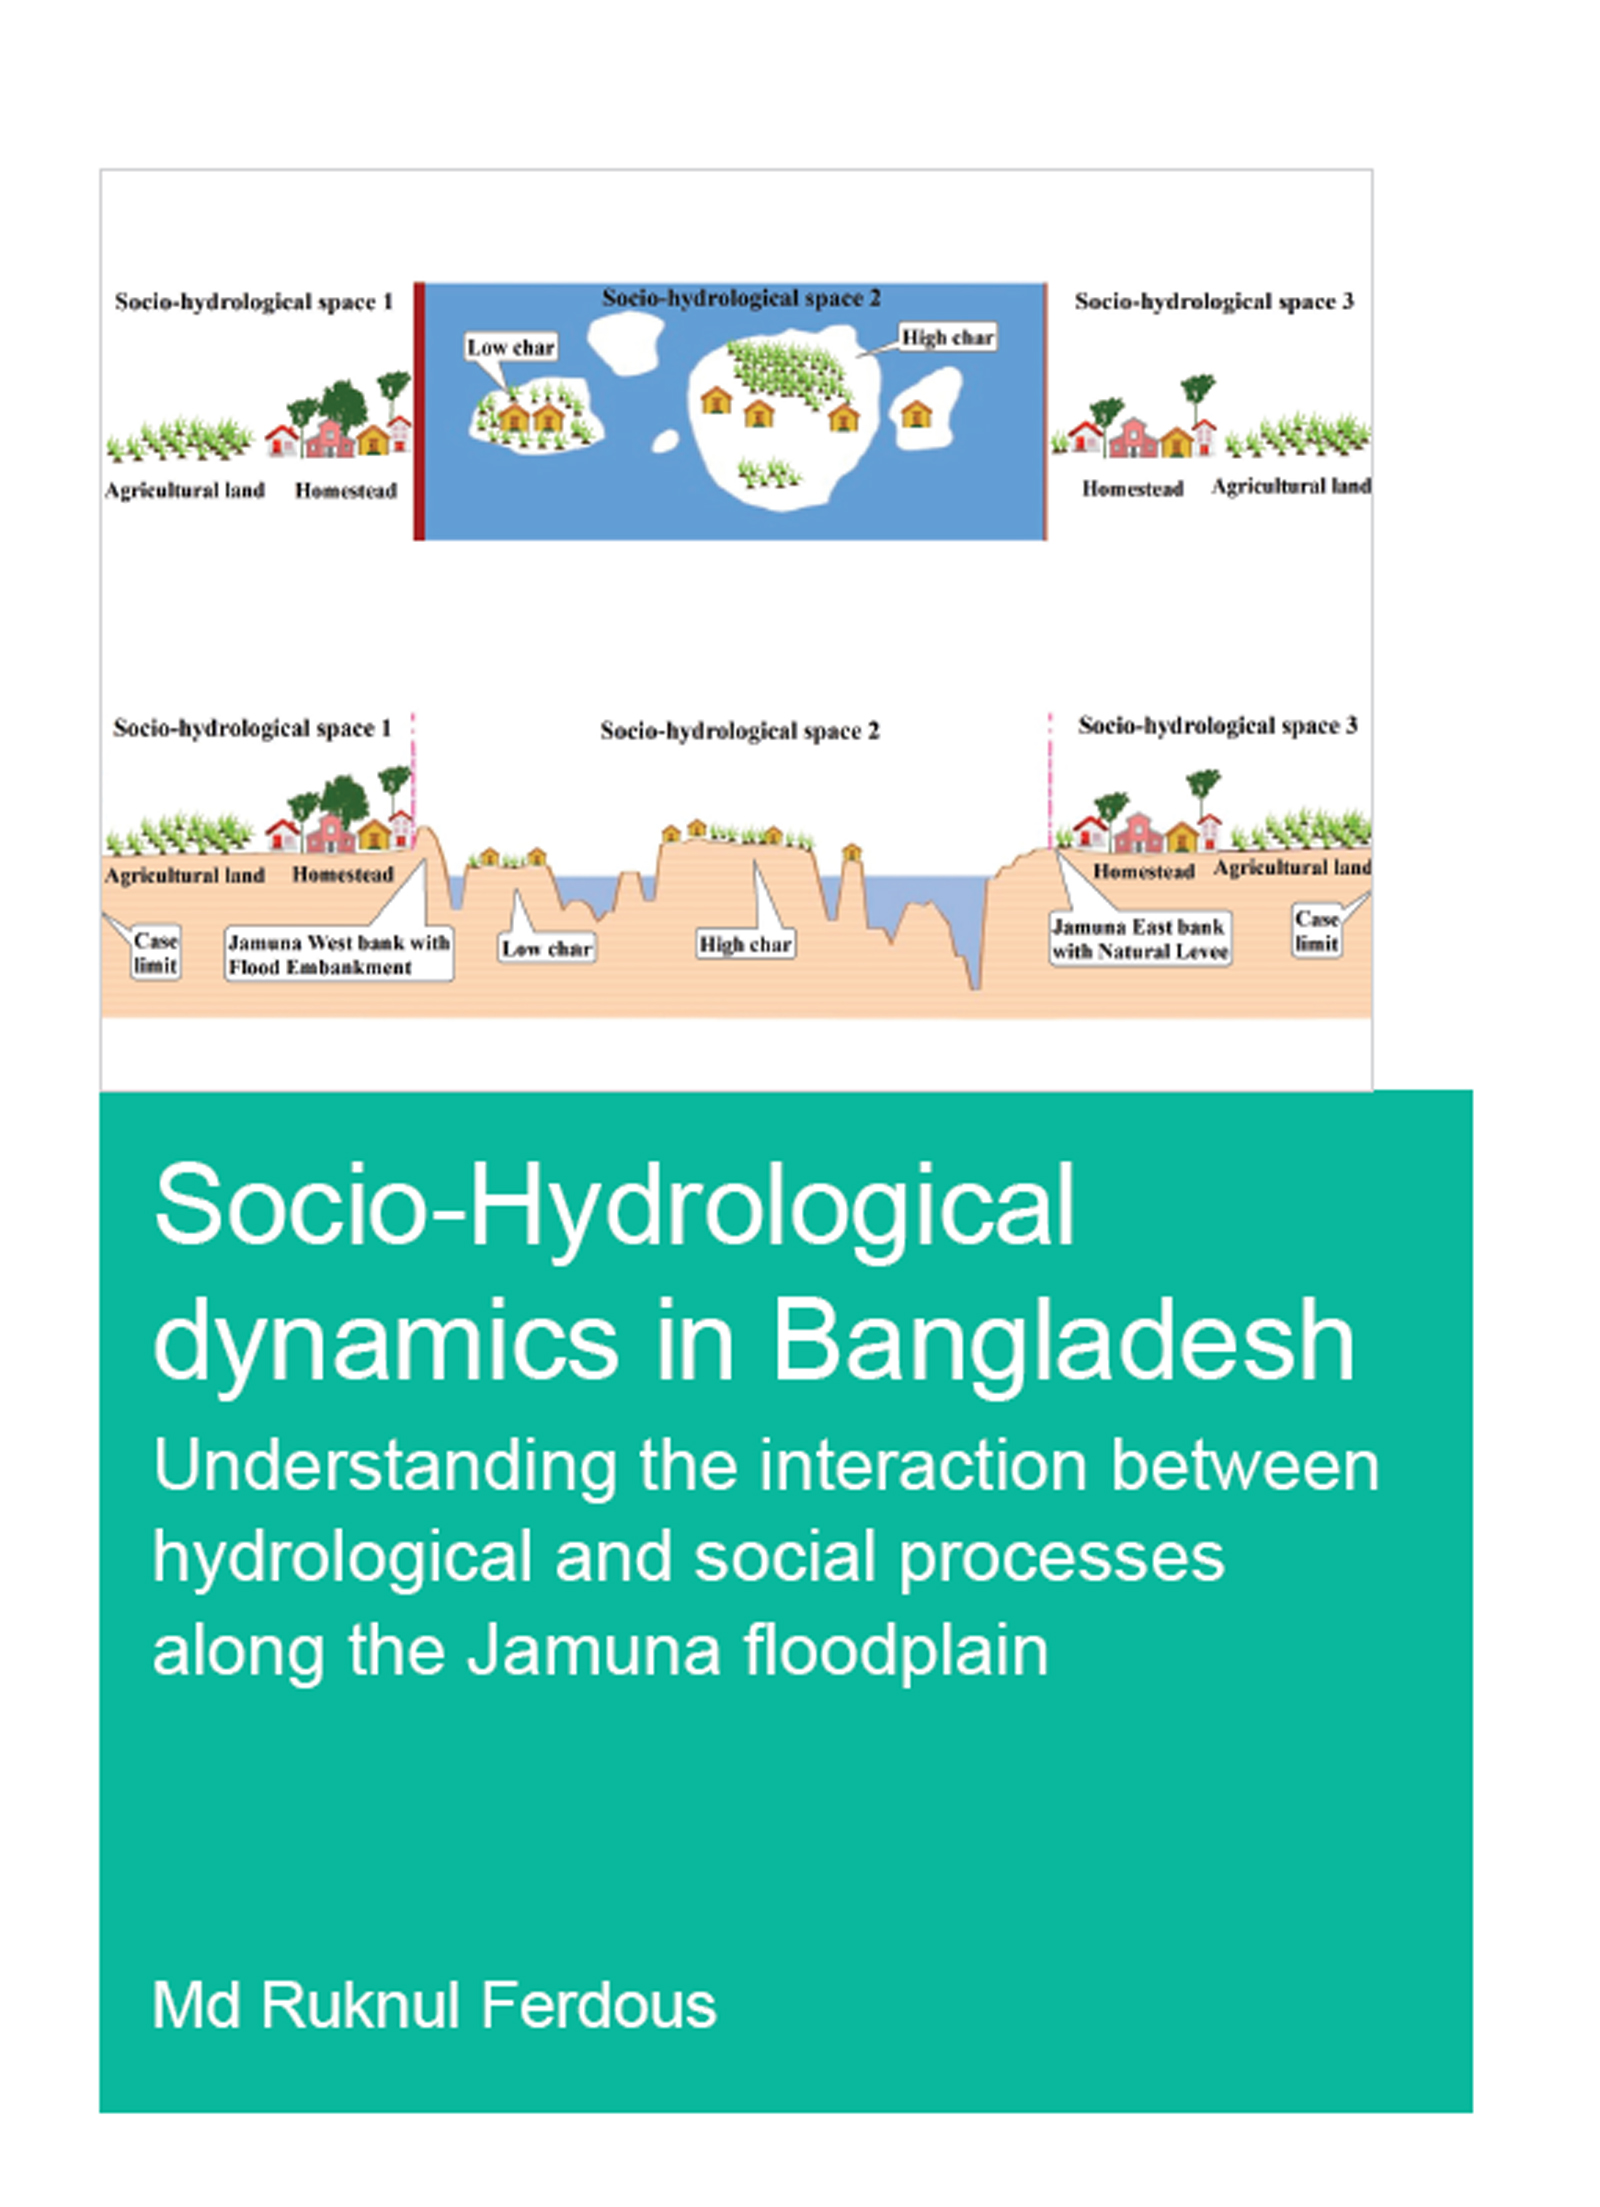 Socio-Hydrological Dynamics in Bangladesh: Understanding the Interaction Between Hydrological and Social Processes Along the Jamuna Floodplain book cover